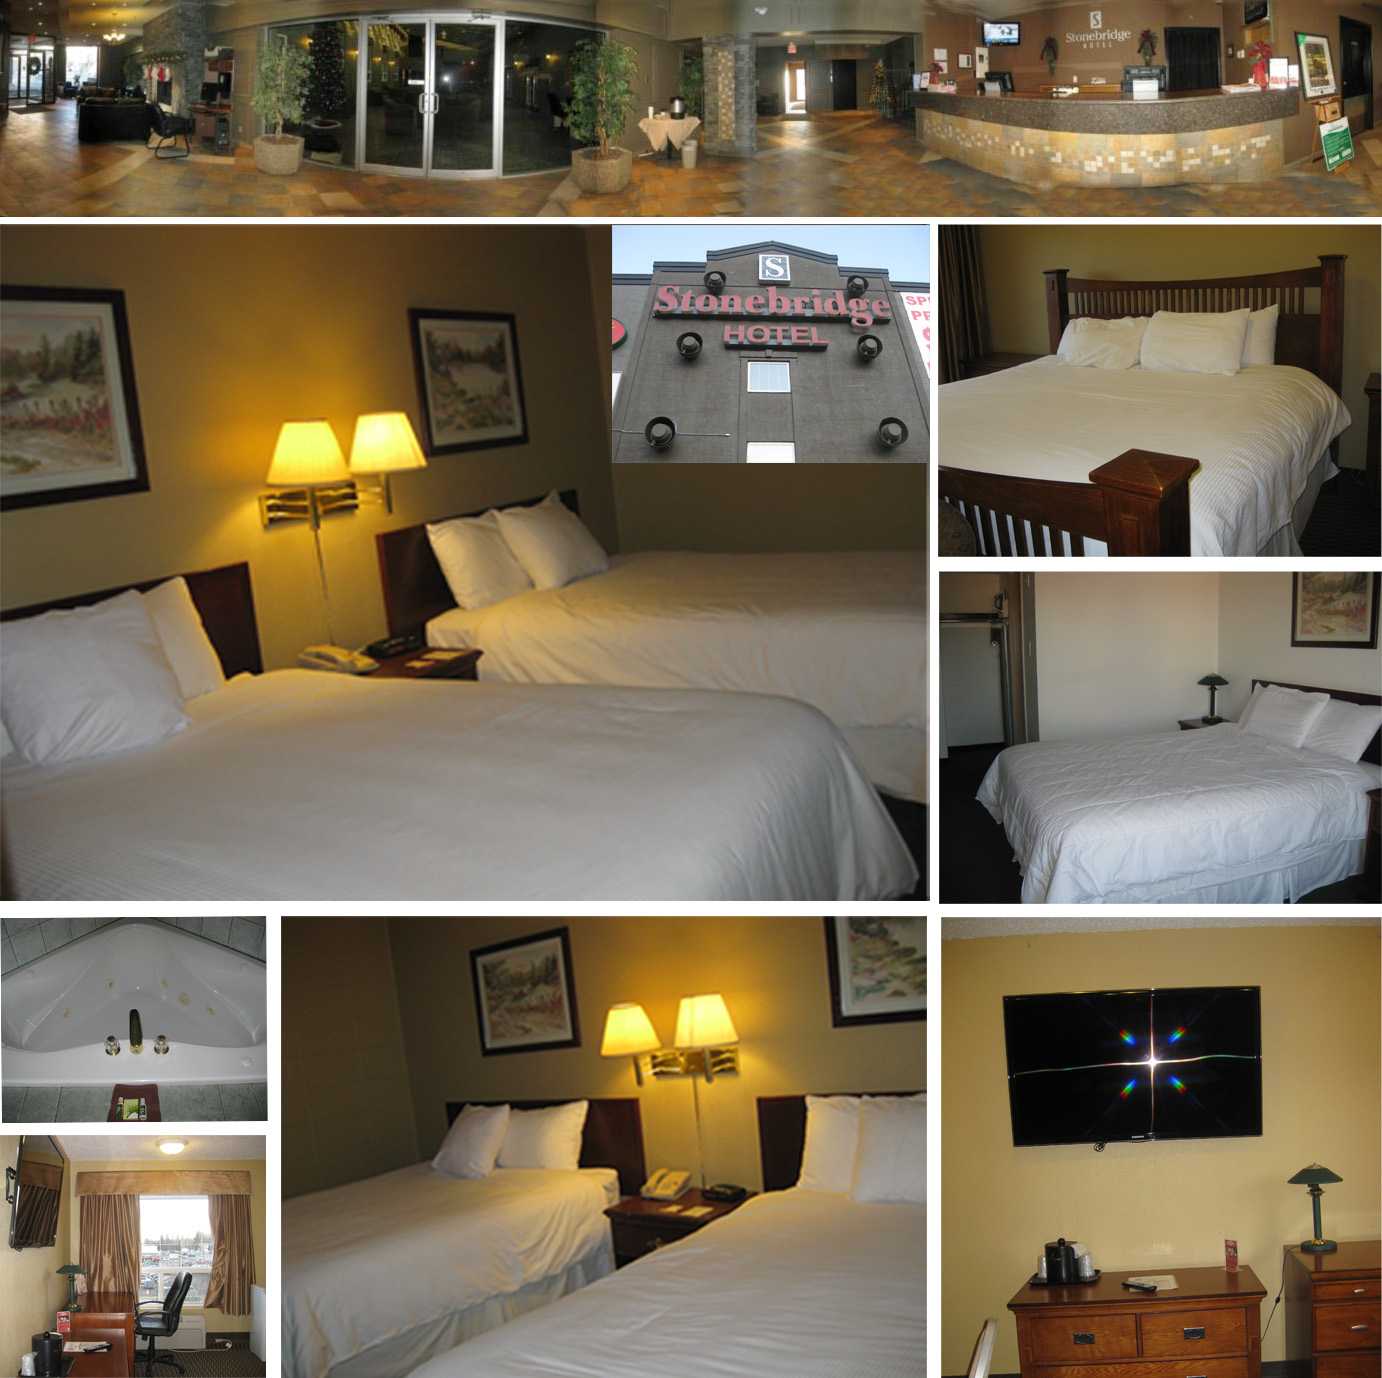 Fridgeicrowaves In Every Room Enhanced Wireless Internet Restaurant Service Bailey S Pub Click Here Extended Stay Hotel